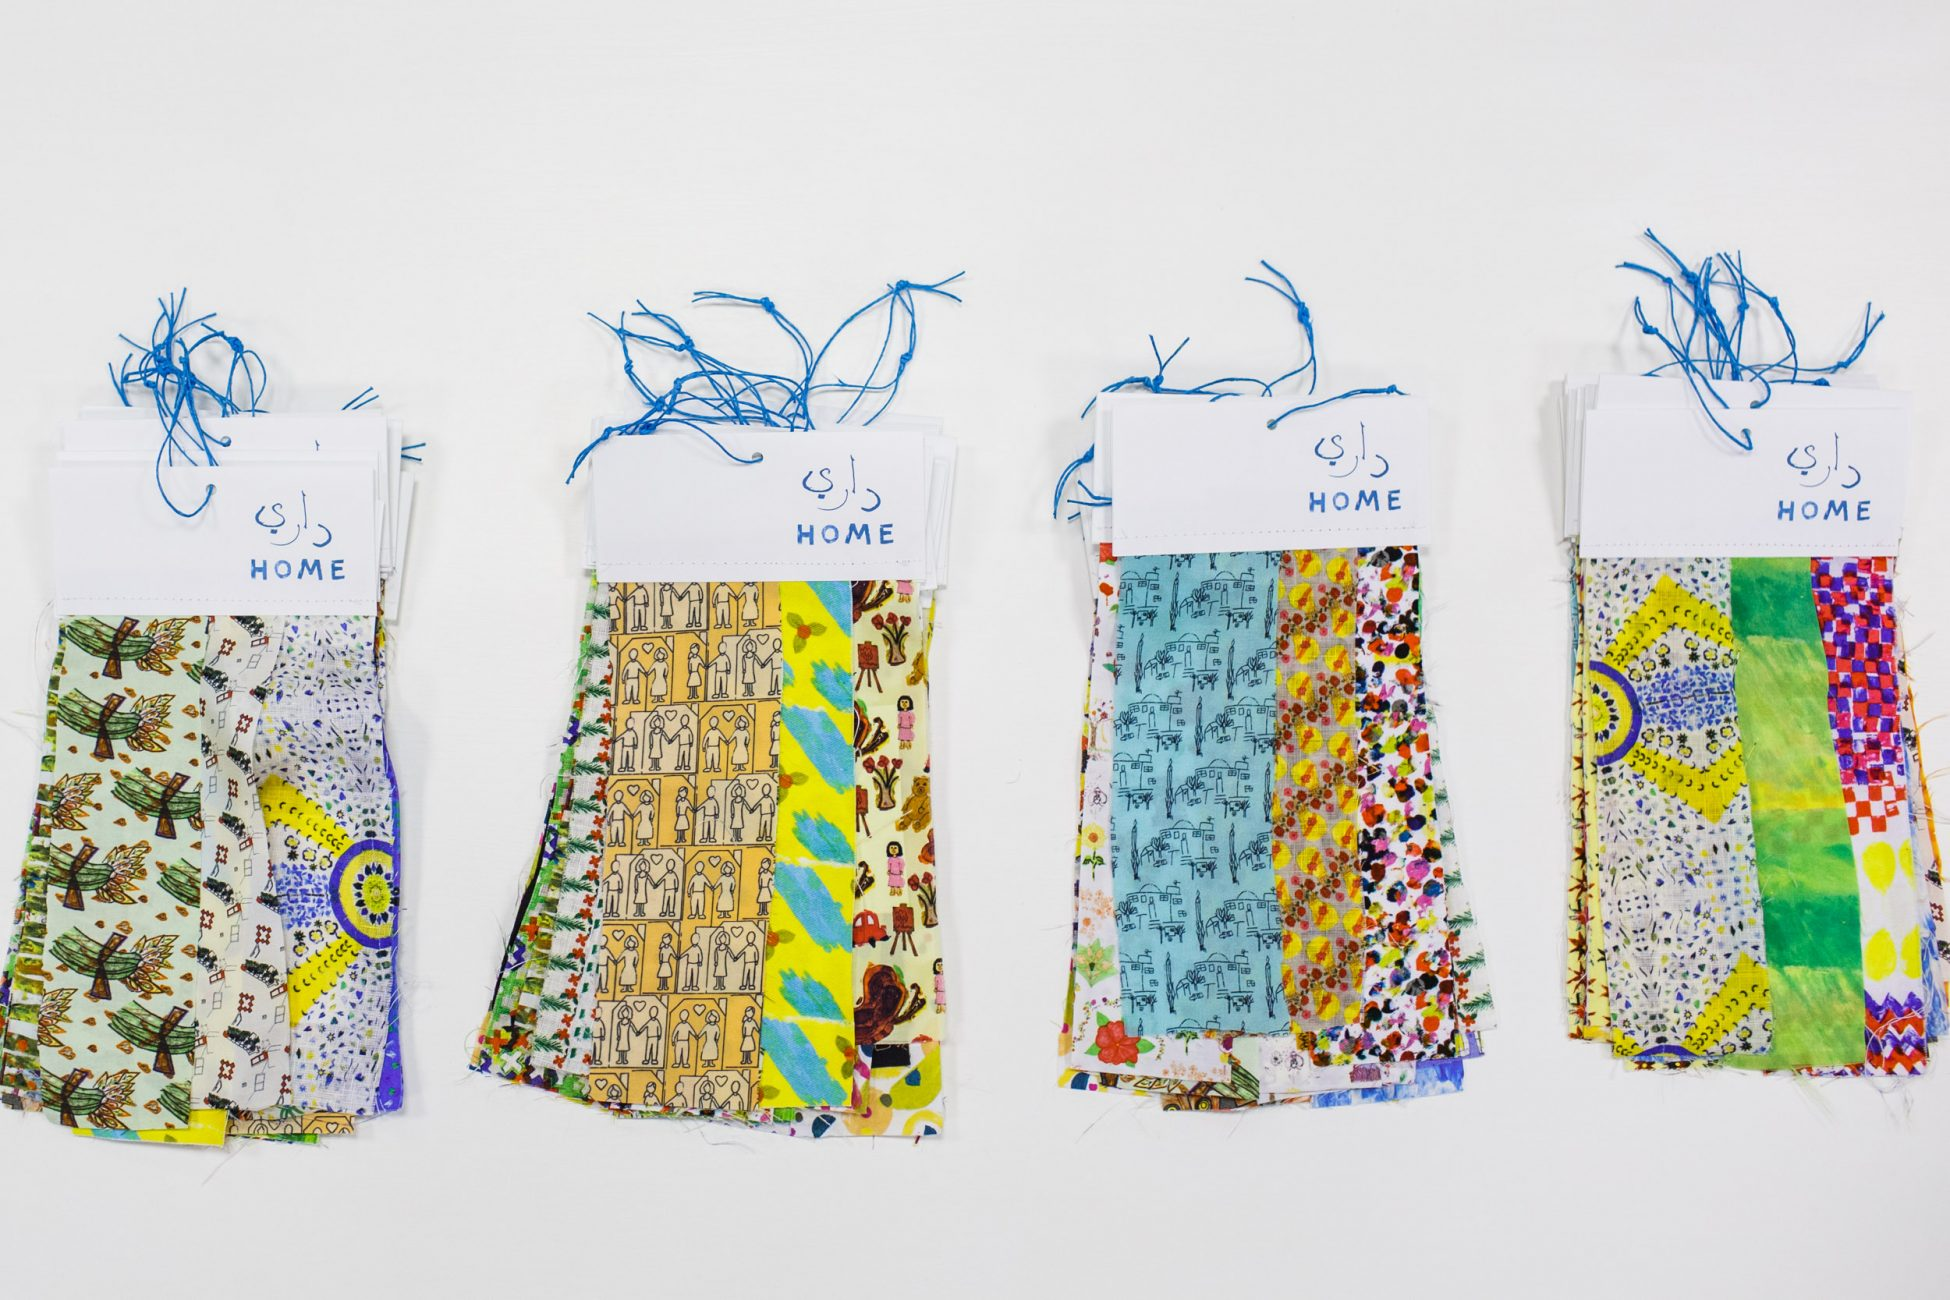 A photo of four piles of fabric strips that have been decorated with different colourful designs. Each set of fabric strips has a tag at the top saying HOME